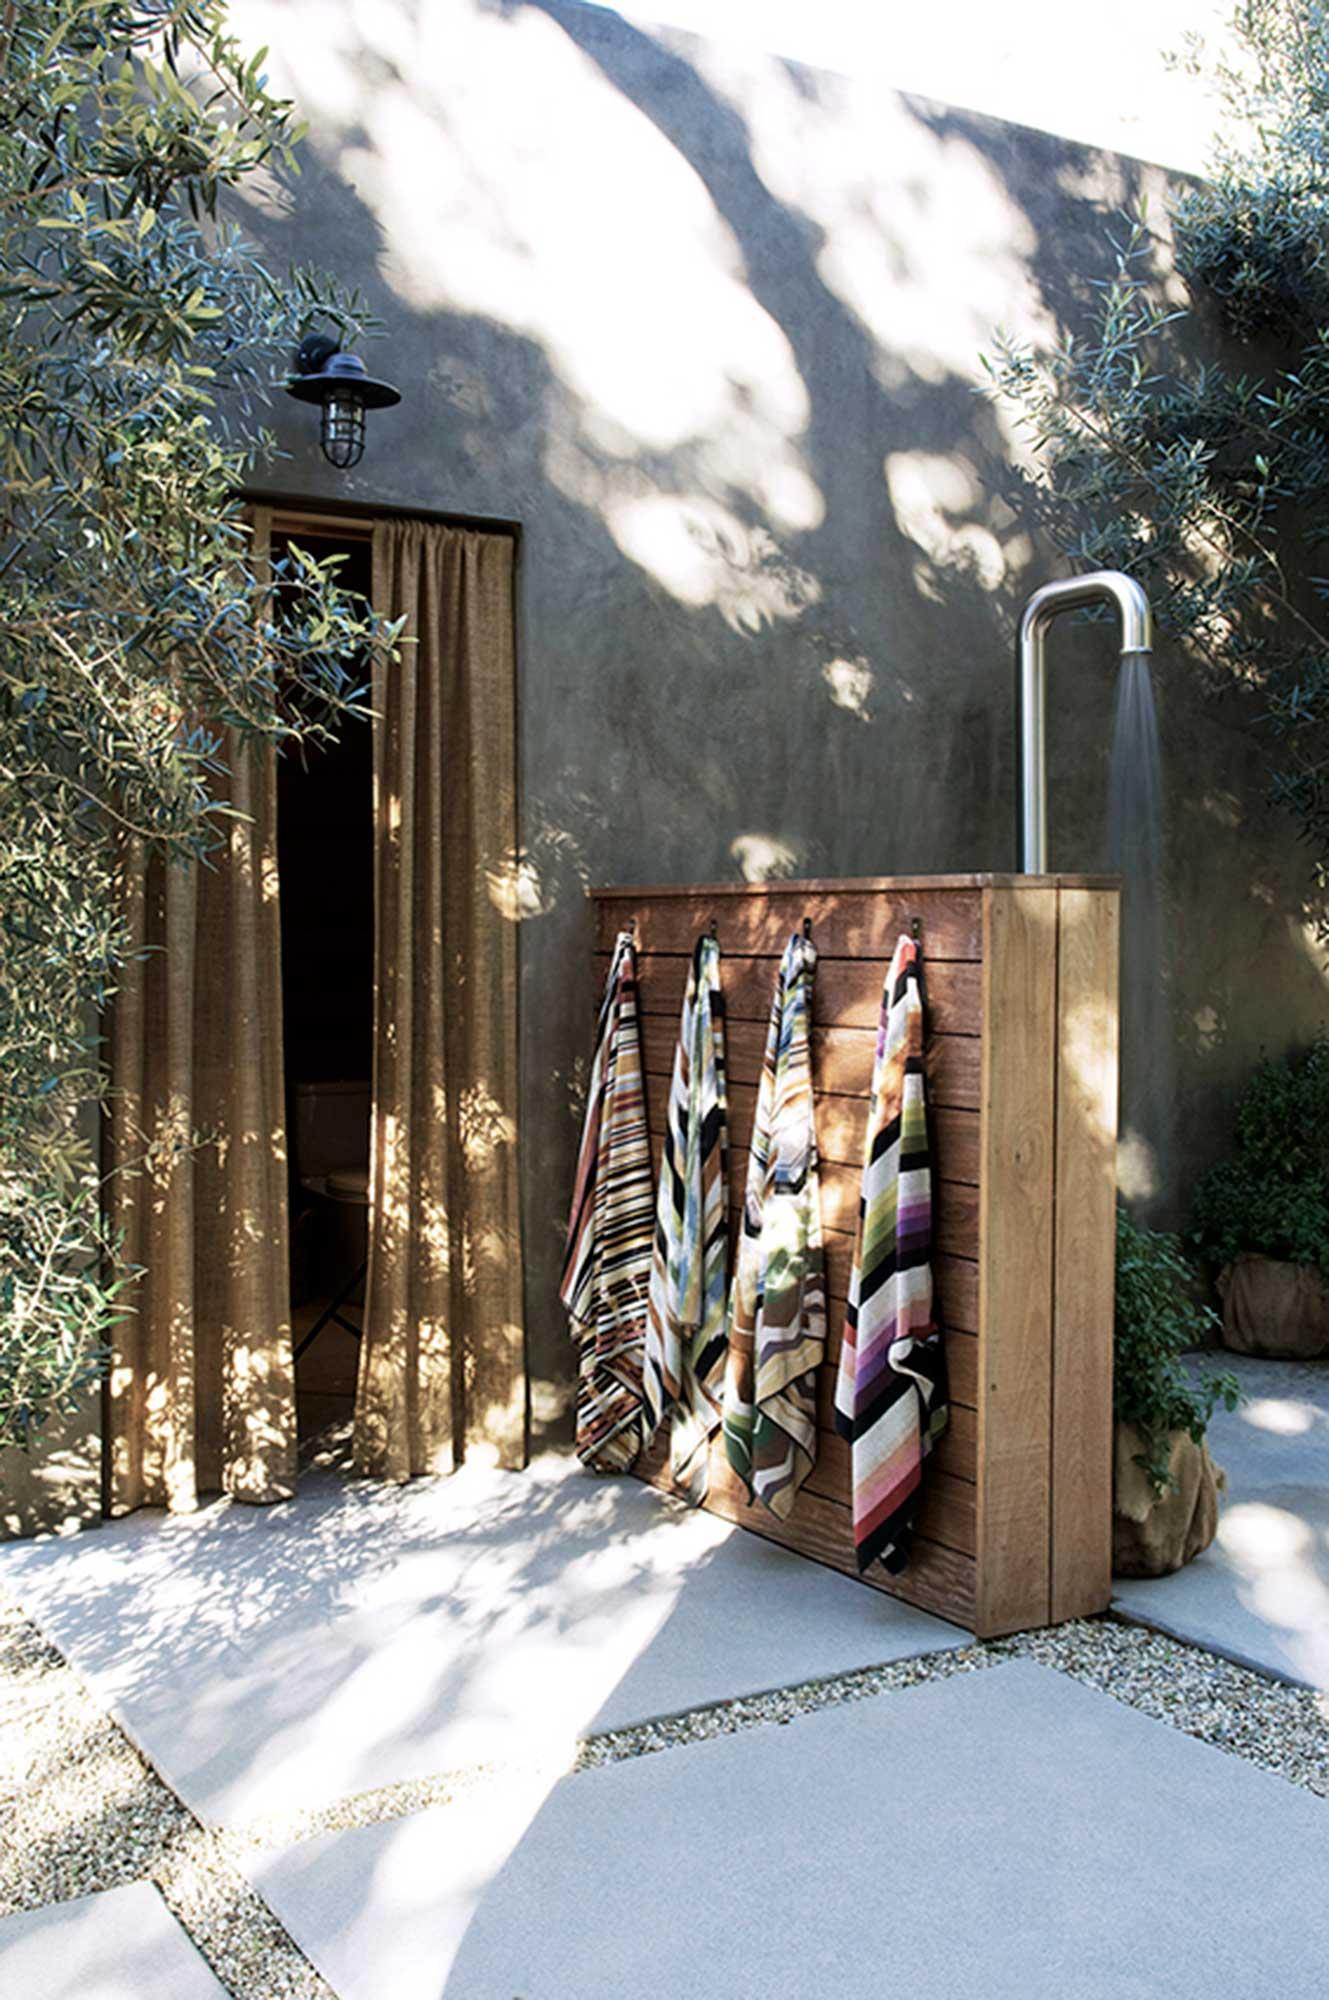 Outdoor Shower Tumblr 21 Refreshingly Beautiful Outdoor Showers I Bet You D Love To Step